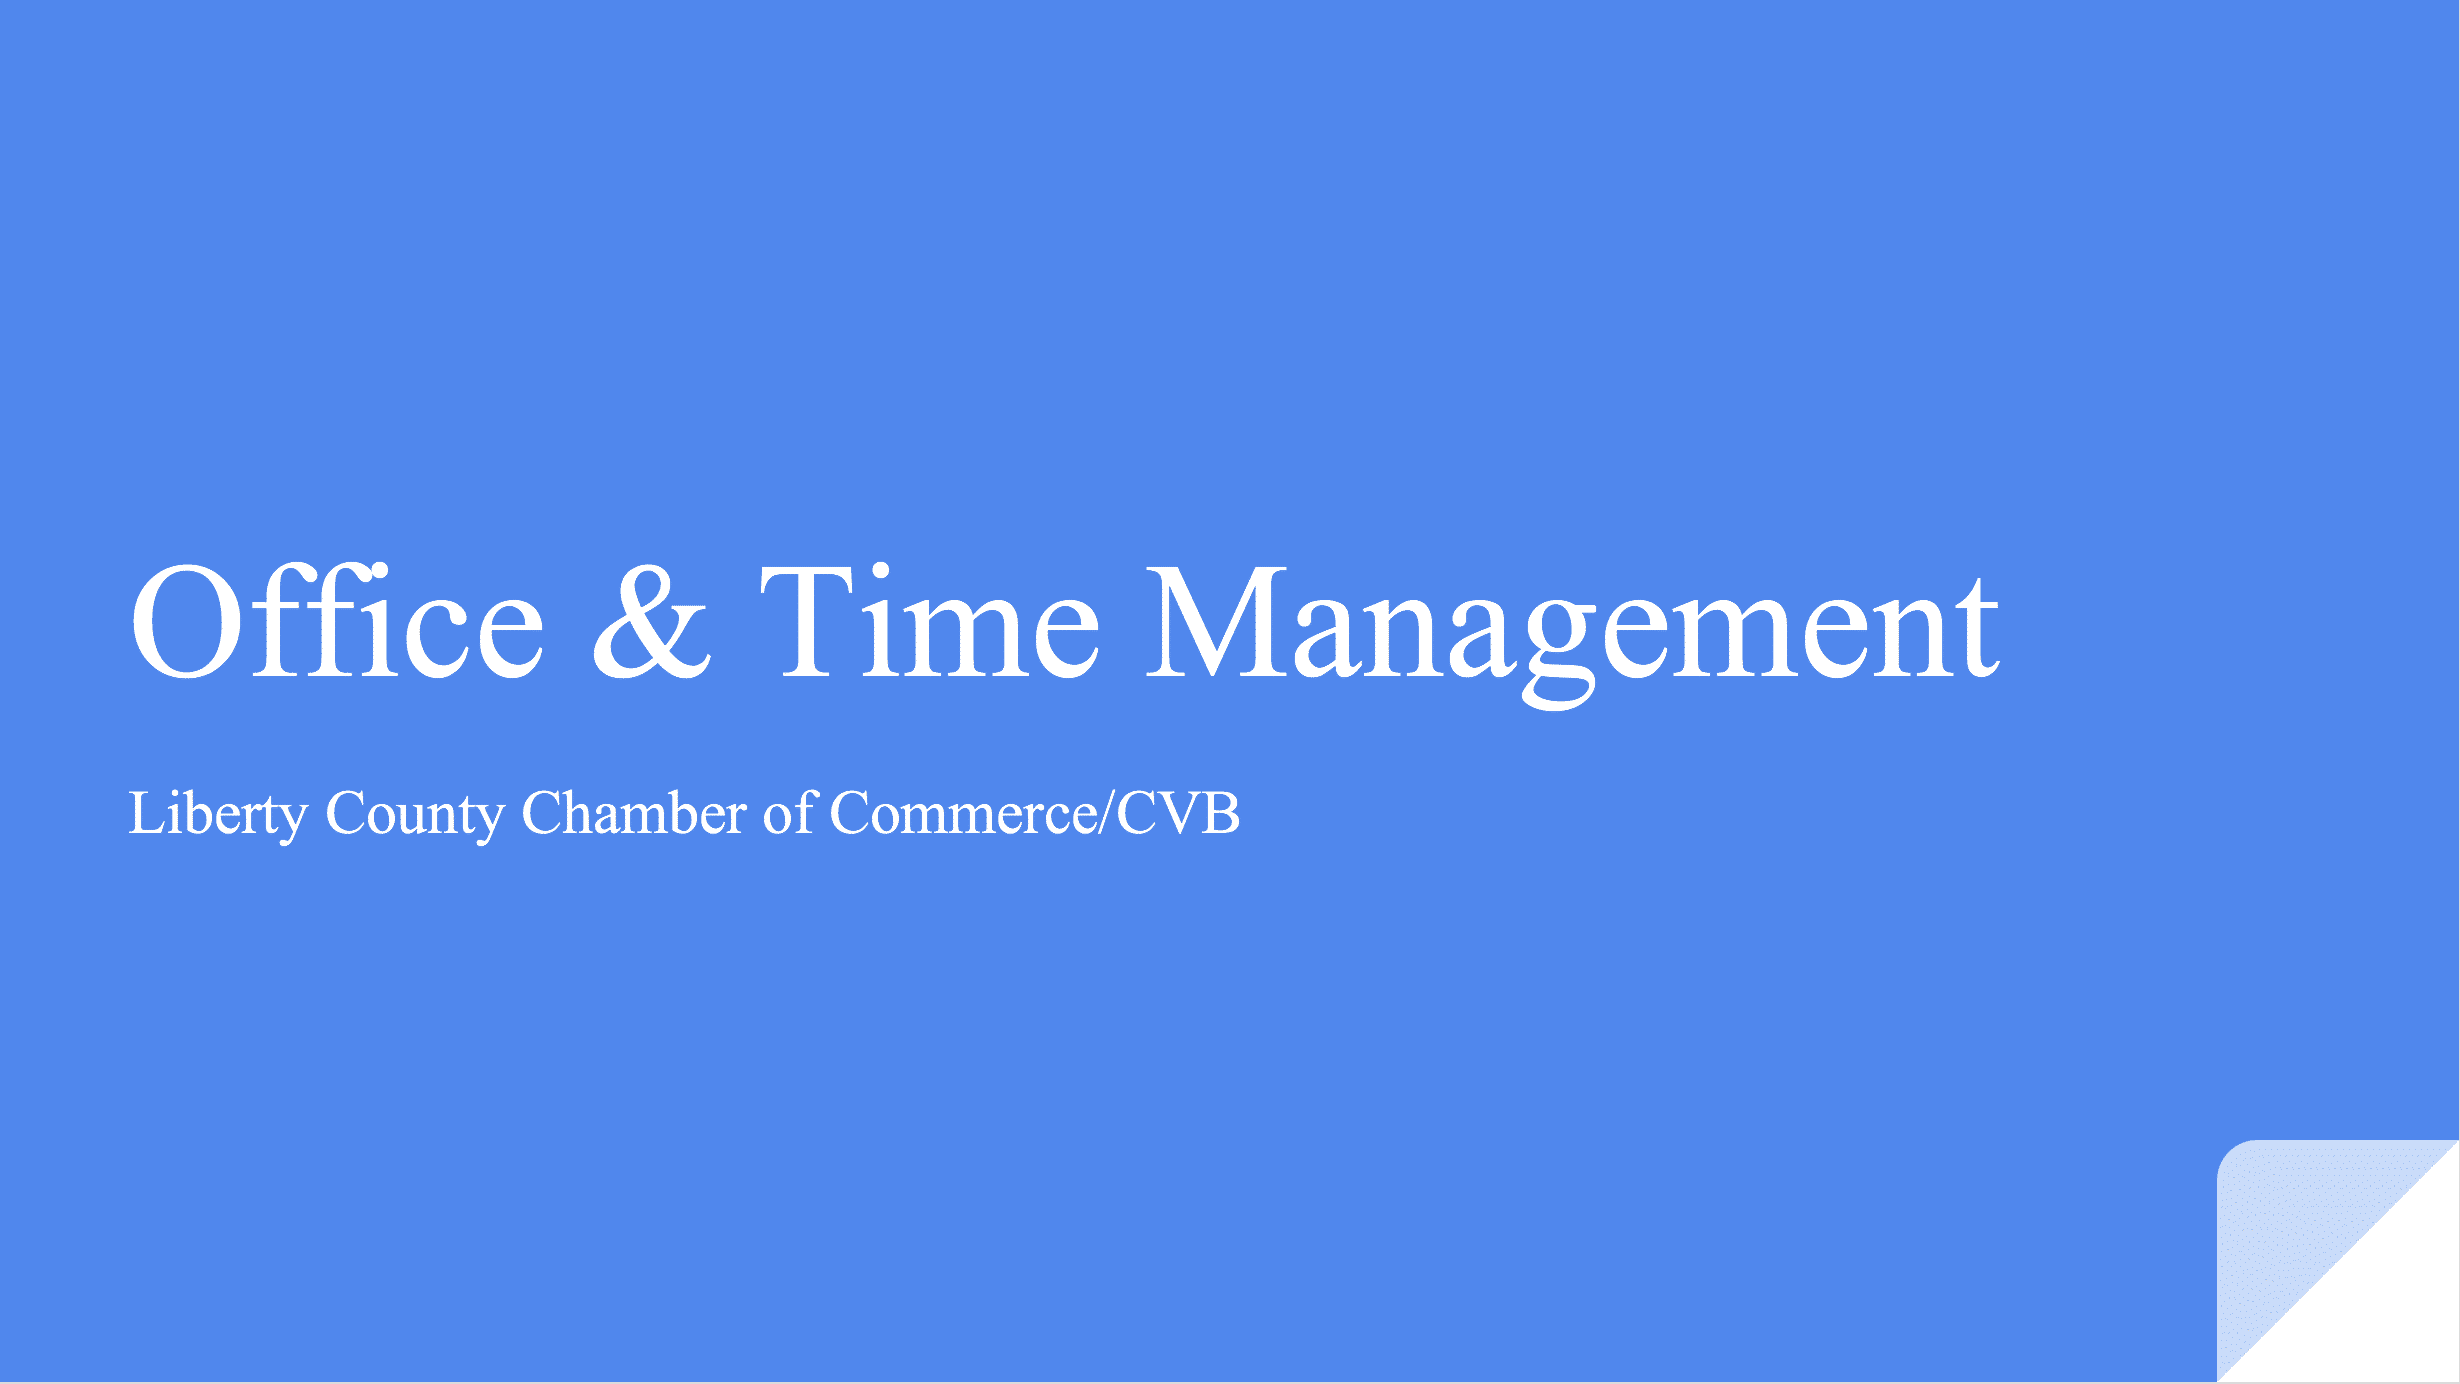 Office and Time Management